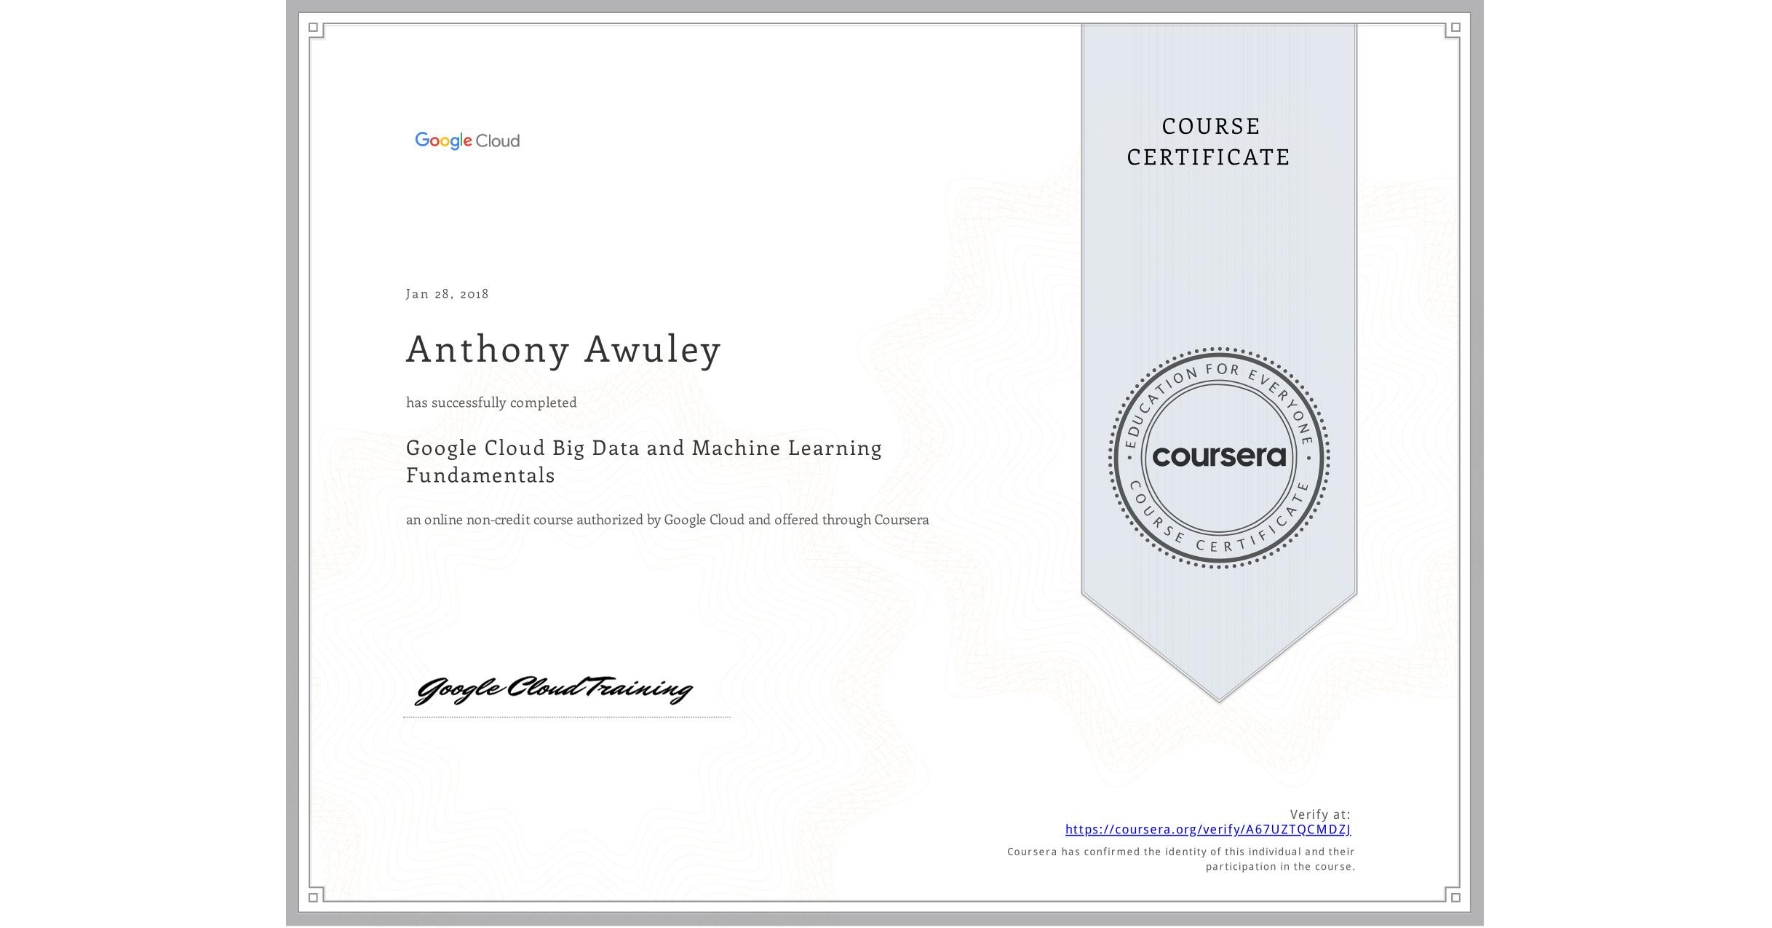 View certificate for Anthony Awuley, Google Cloud Platform Big Data and Machine Learning Fundamentals, an online non-credit course authorized by Google Cloud and offered through Coursera